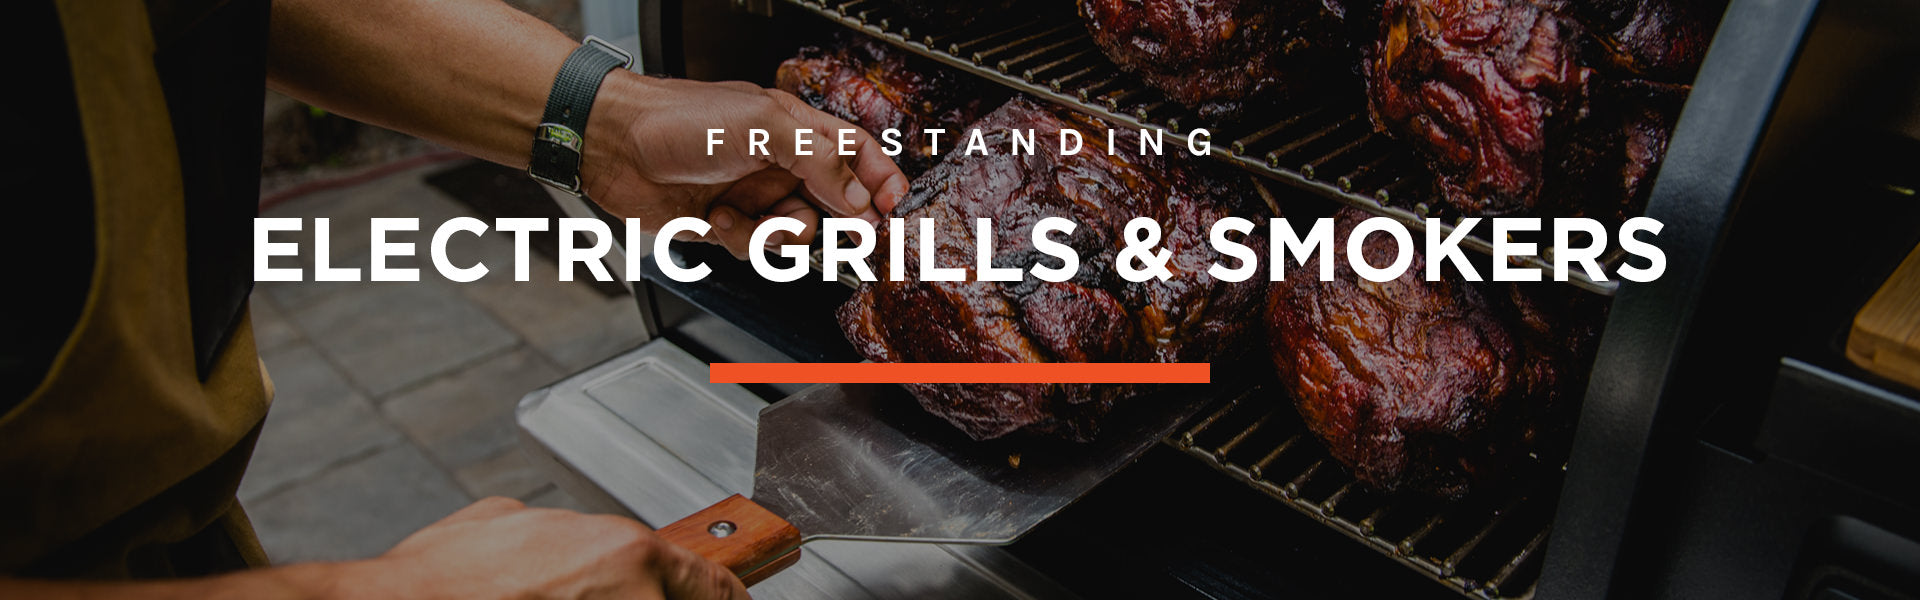 Electric Grills & Smokers Freestanding